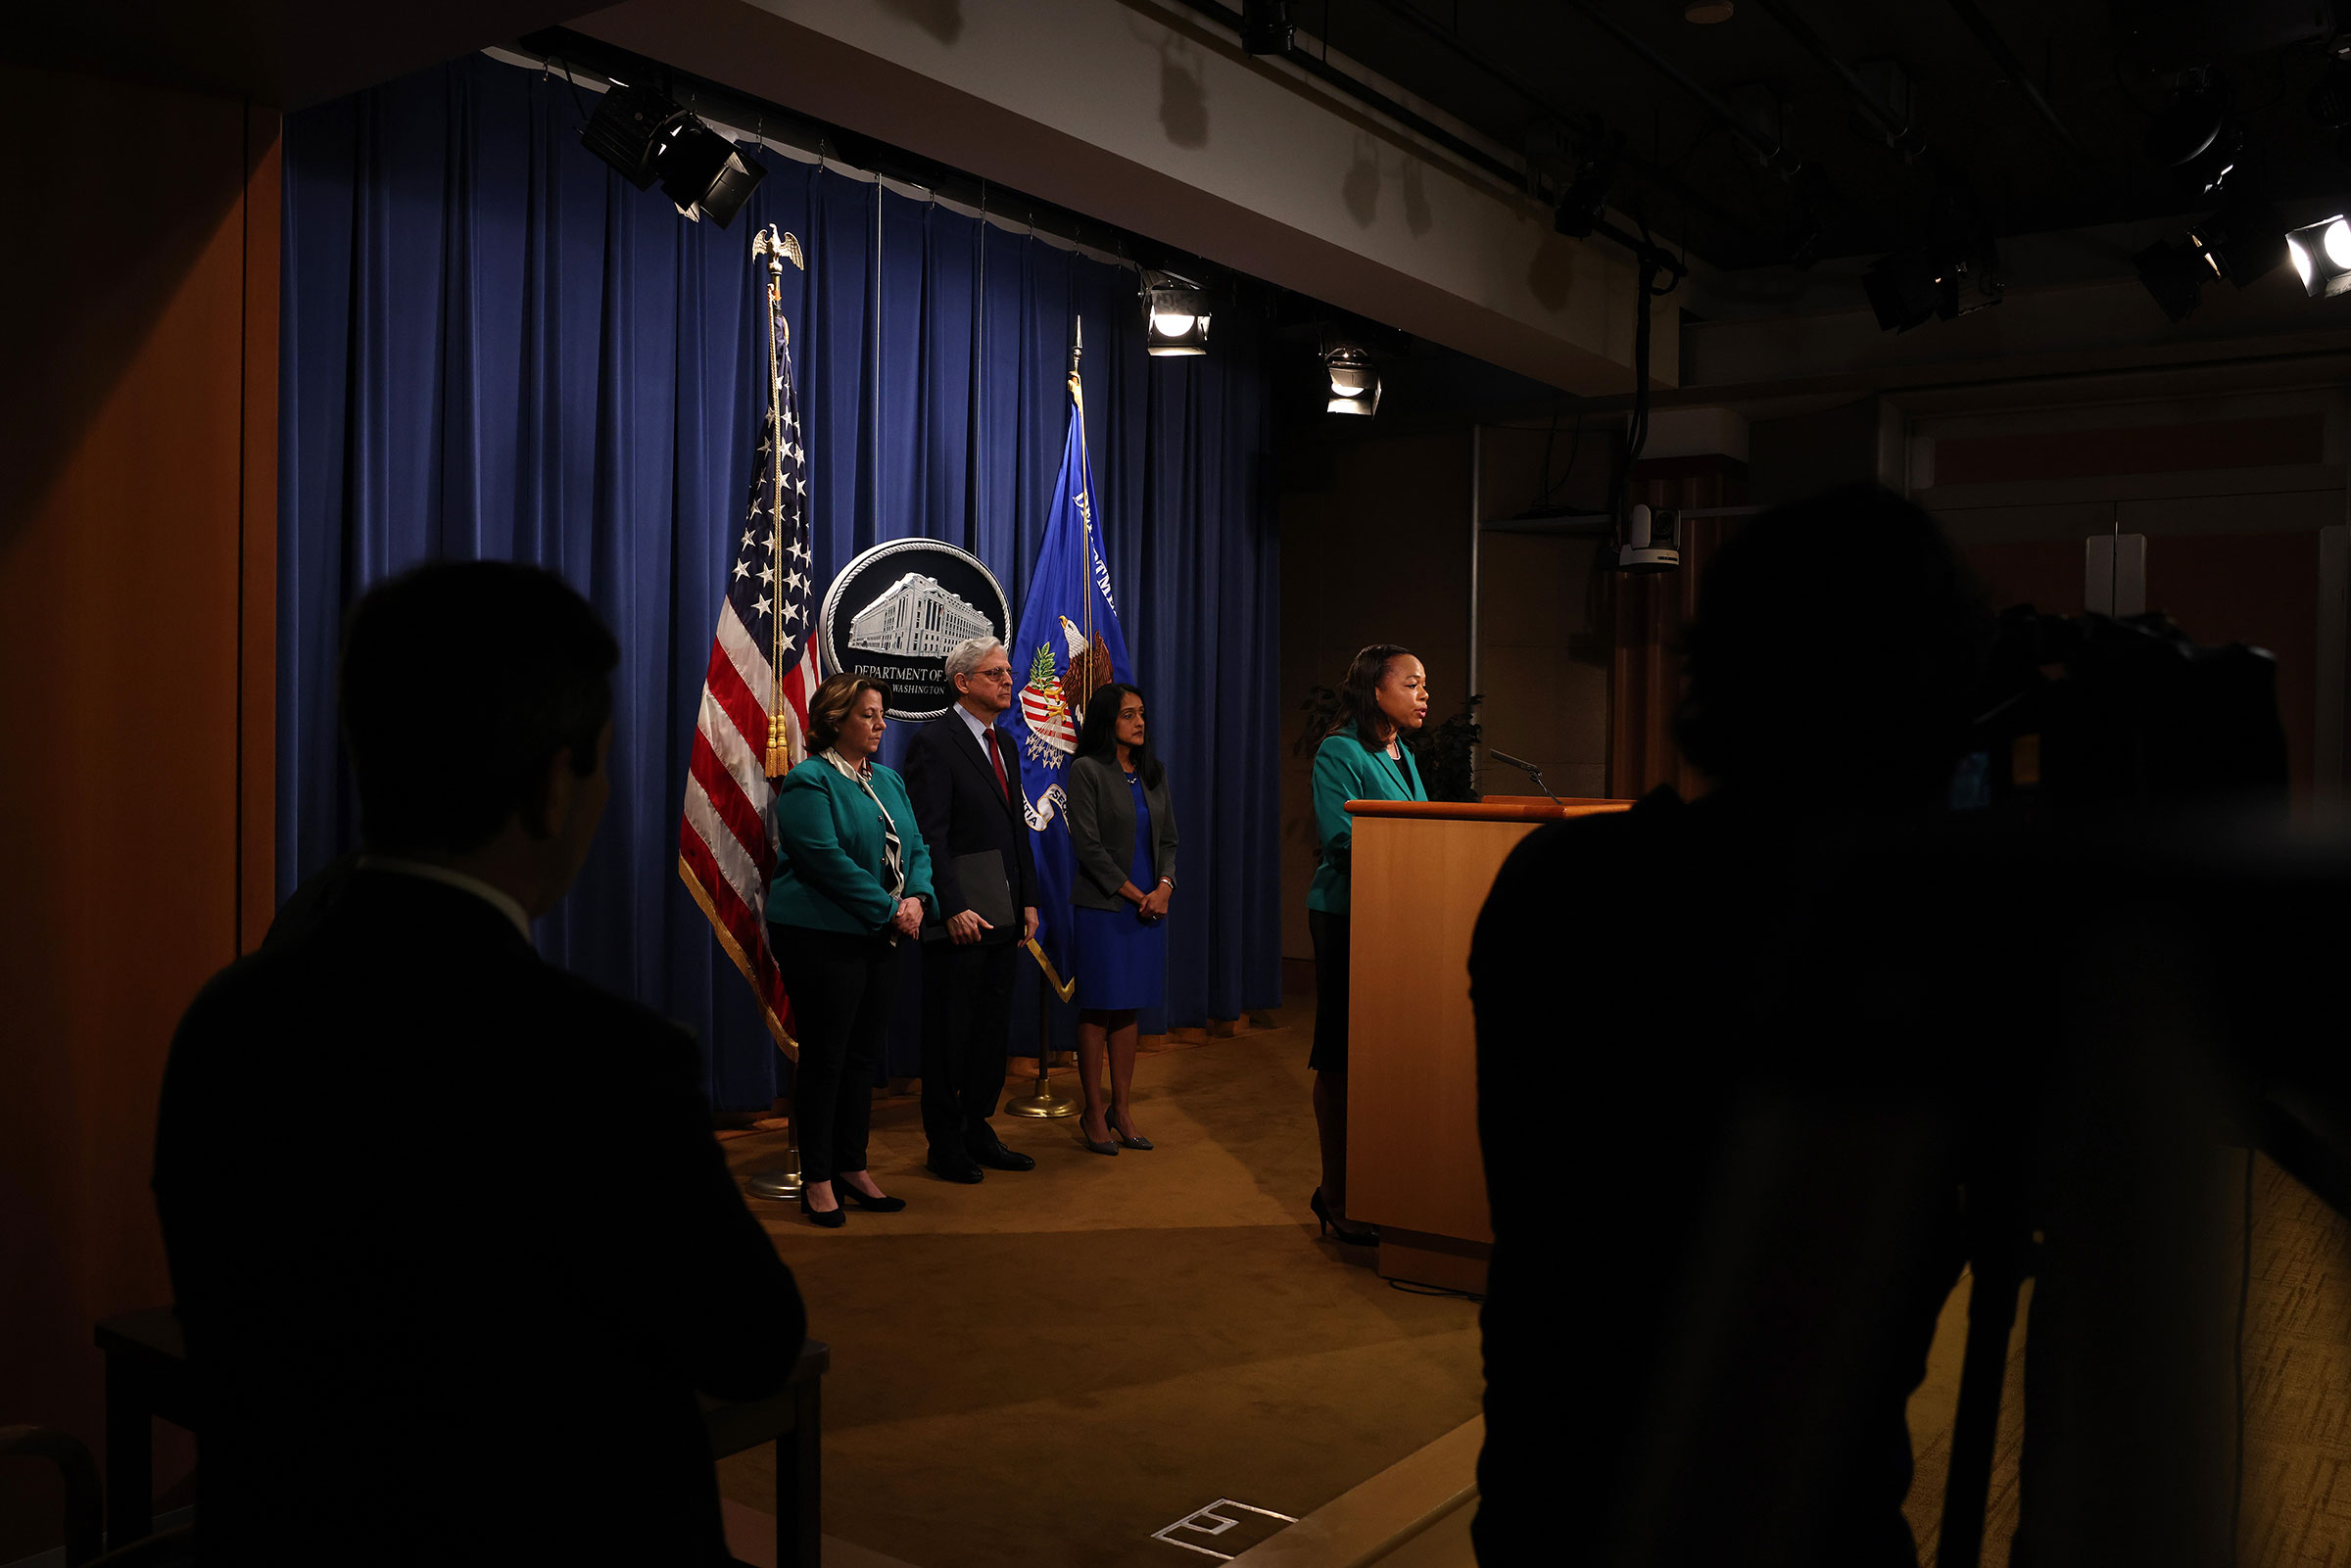 Kristen Clarke, Assistant Attorney General for the Civil Rights Division speaks at a news conference, as Lisa O. Monaco, Deputy Attorney General, Attorney General Merrick Garland, and Vanita Gupta, associate U.S. attorney general, at the Department of Justice in Washington on June 25, 2021.